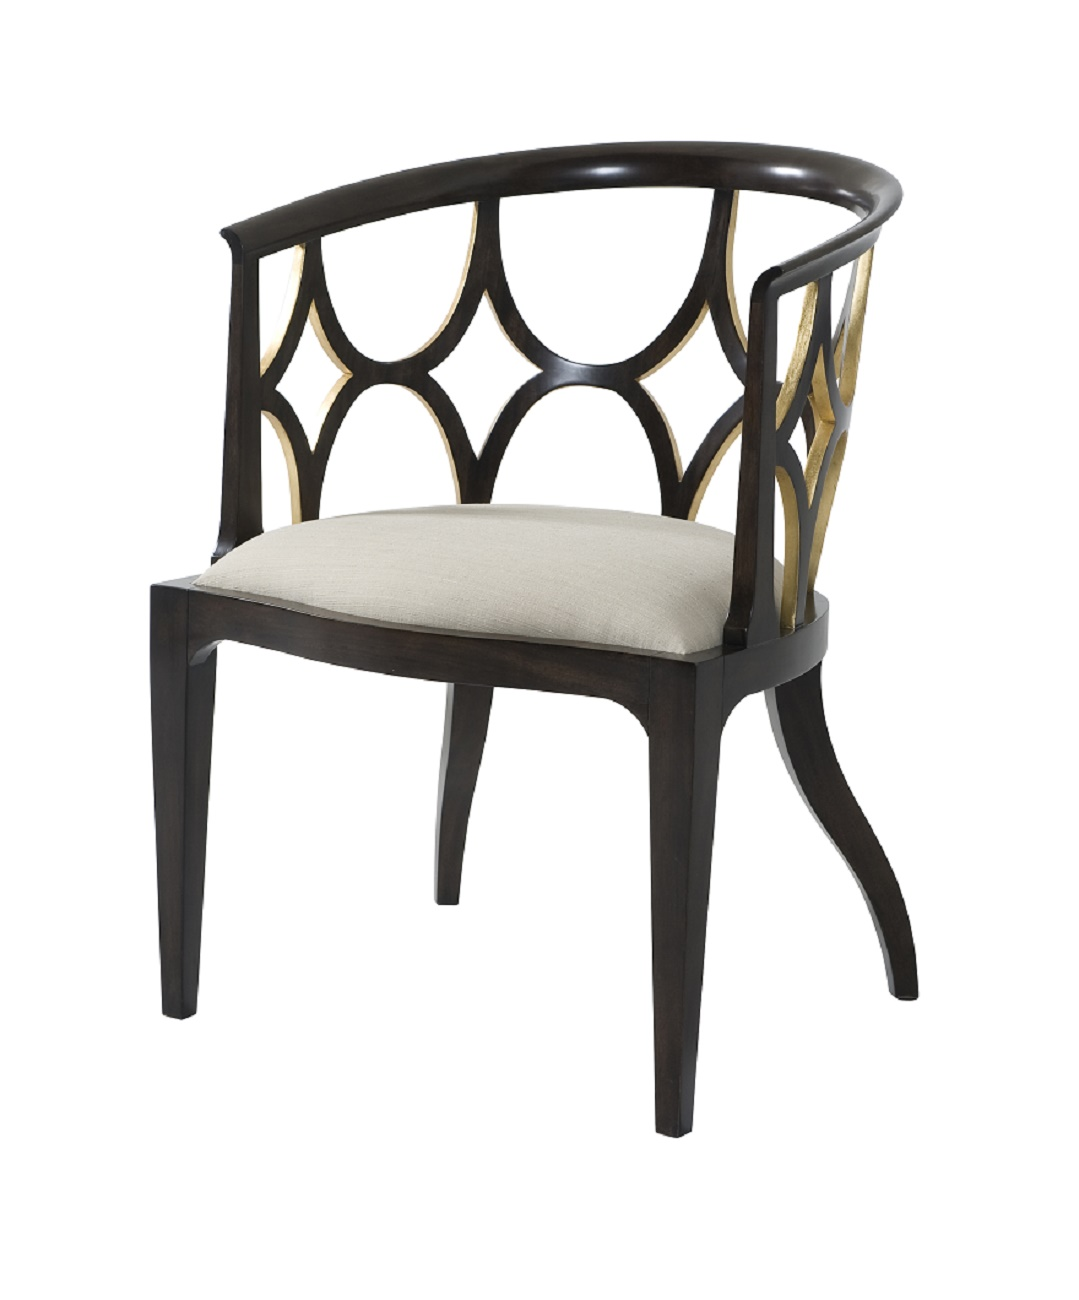 Ebonised Connaught Chair theodore alexander 4202 066